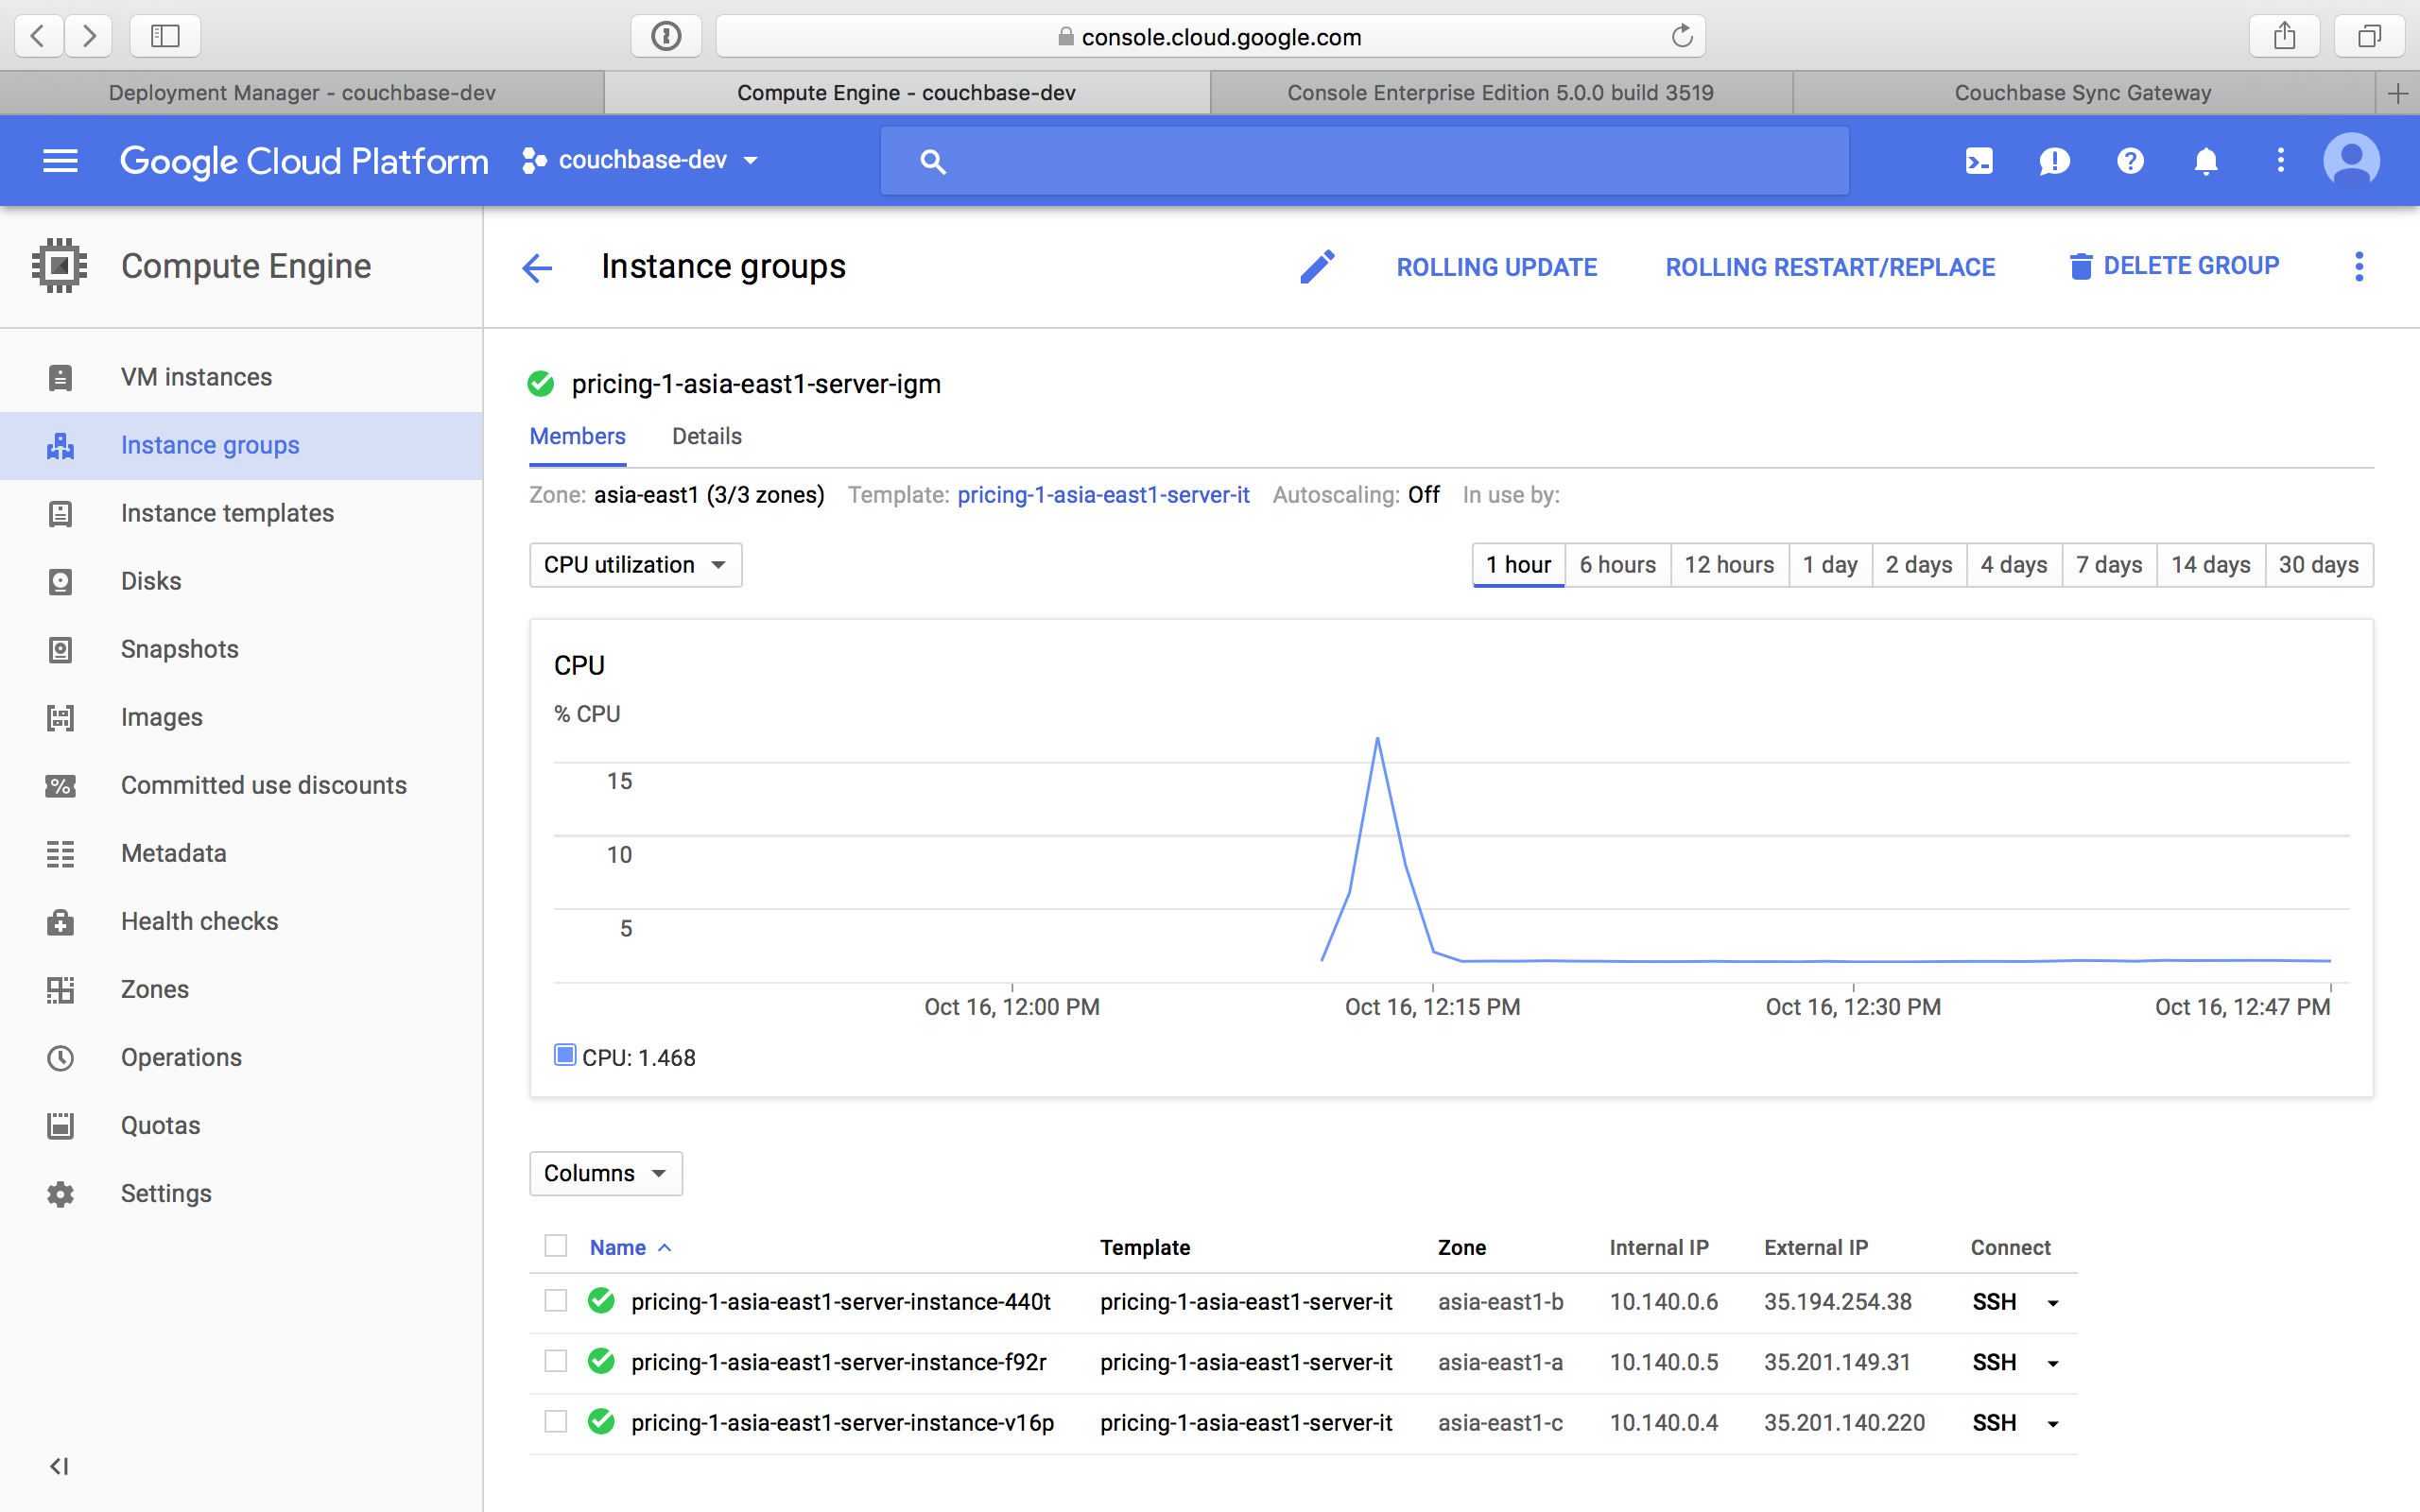 Deploying Couchbase on Google Cloud Launcher | Couchbase Docs